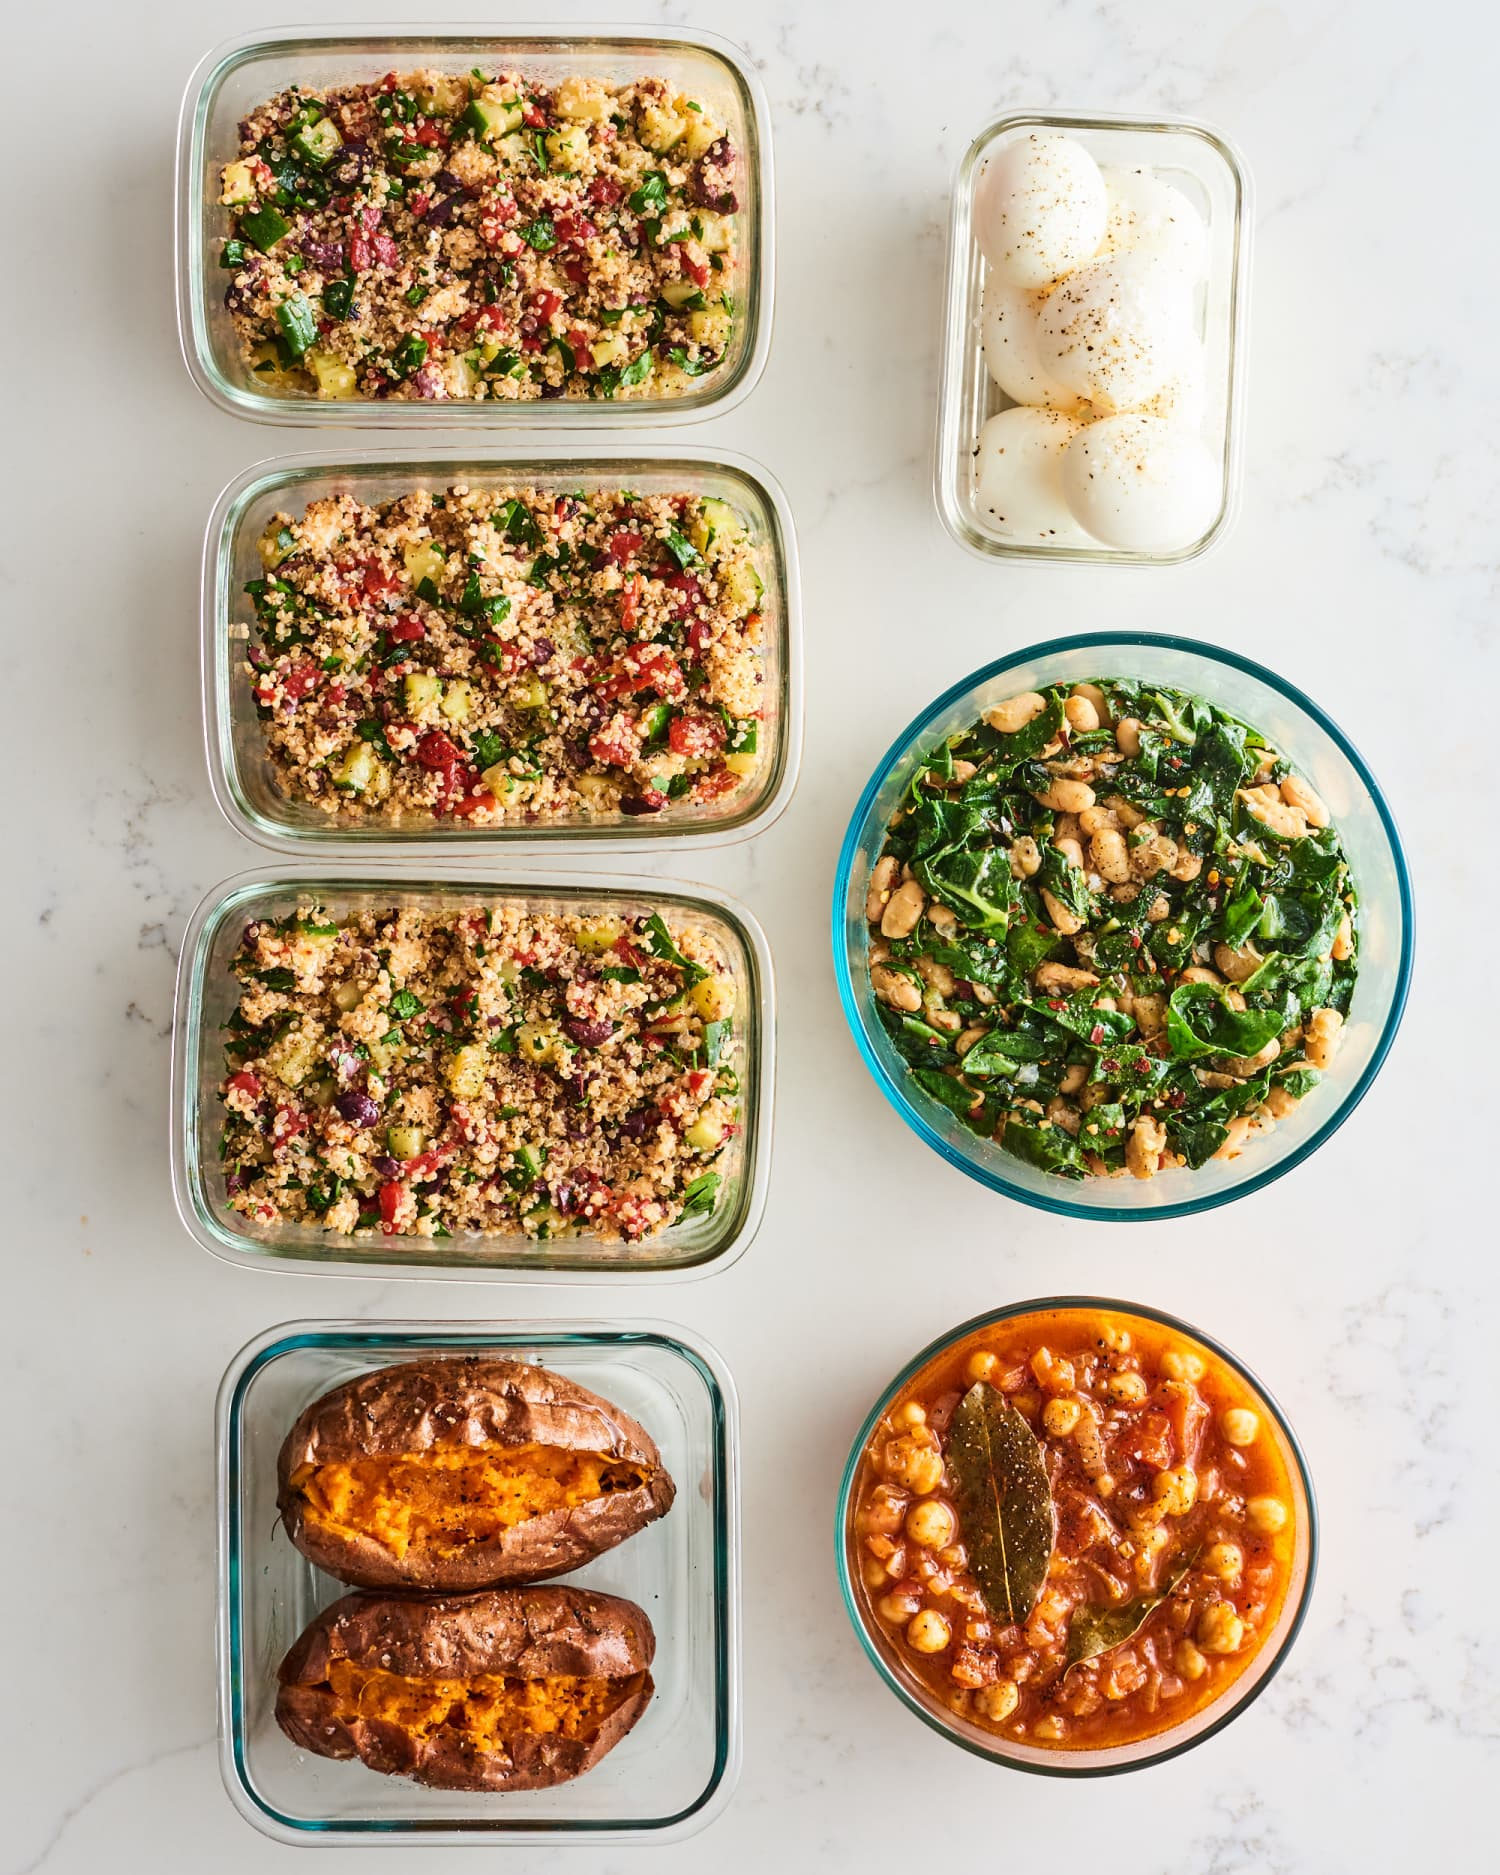 Meal Prep Plan: How I Prep a Week of Vegetarian Mediterranean Diet Meals In Just 2 Hours